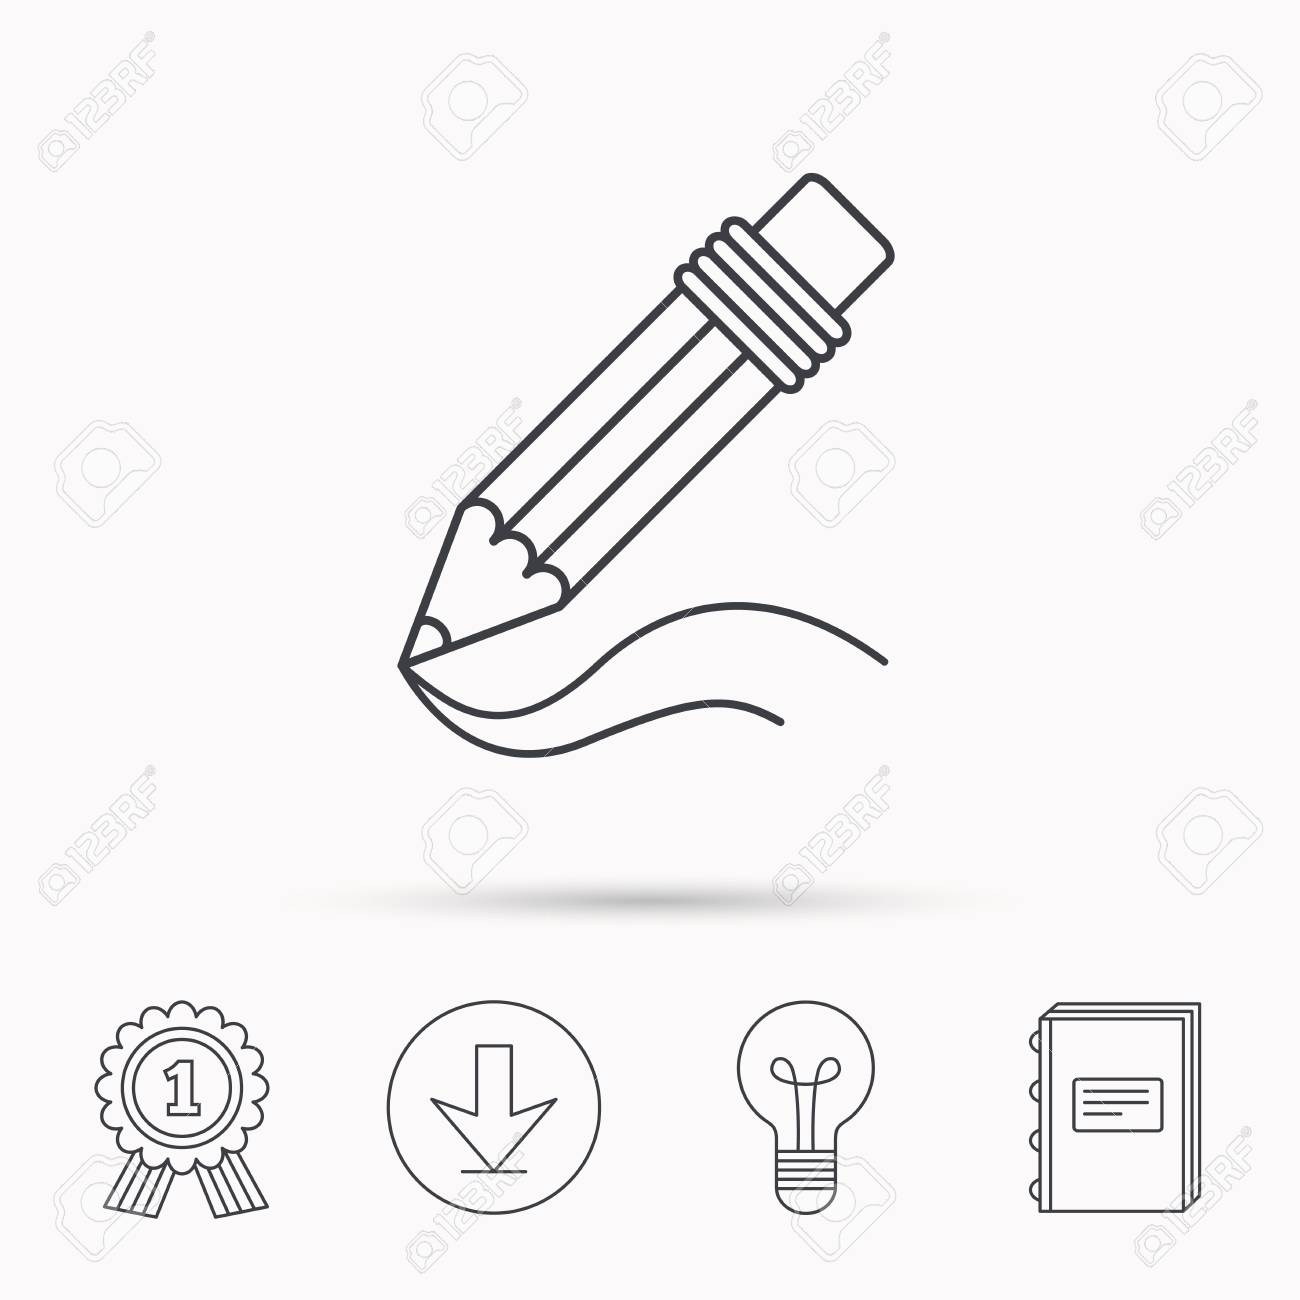 Drawing tool sign study equipment download arrow lamp learn